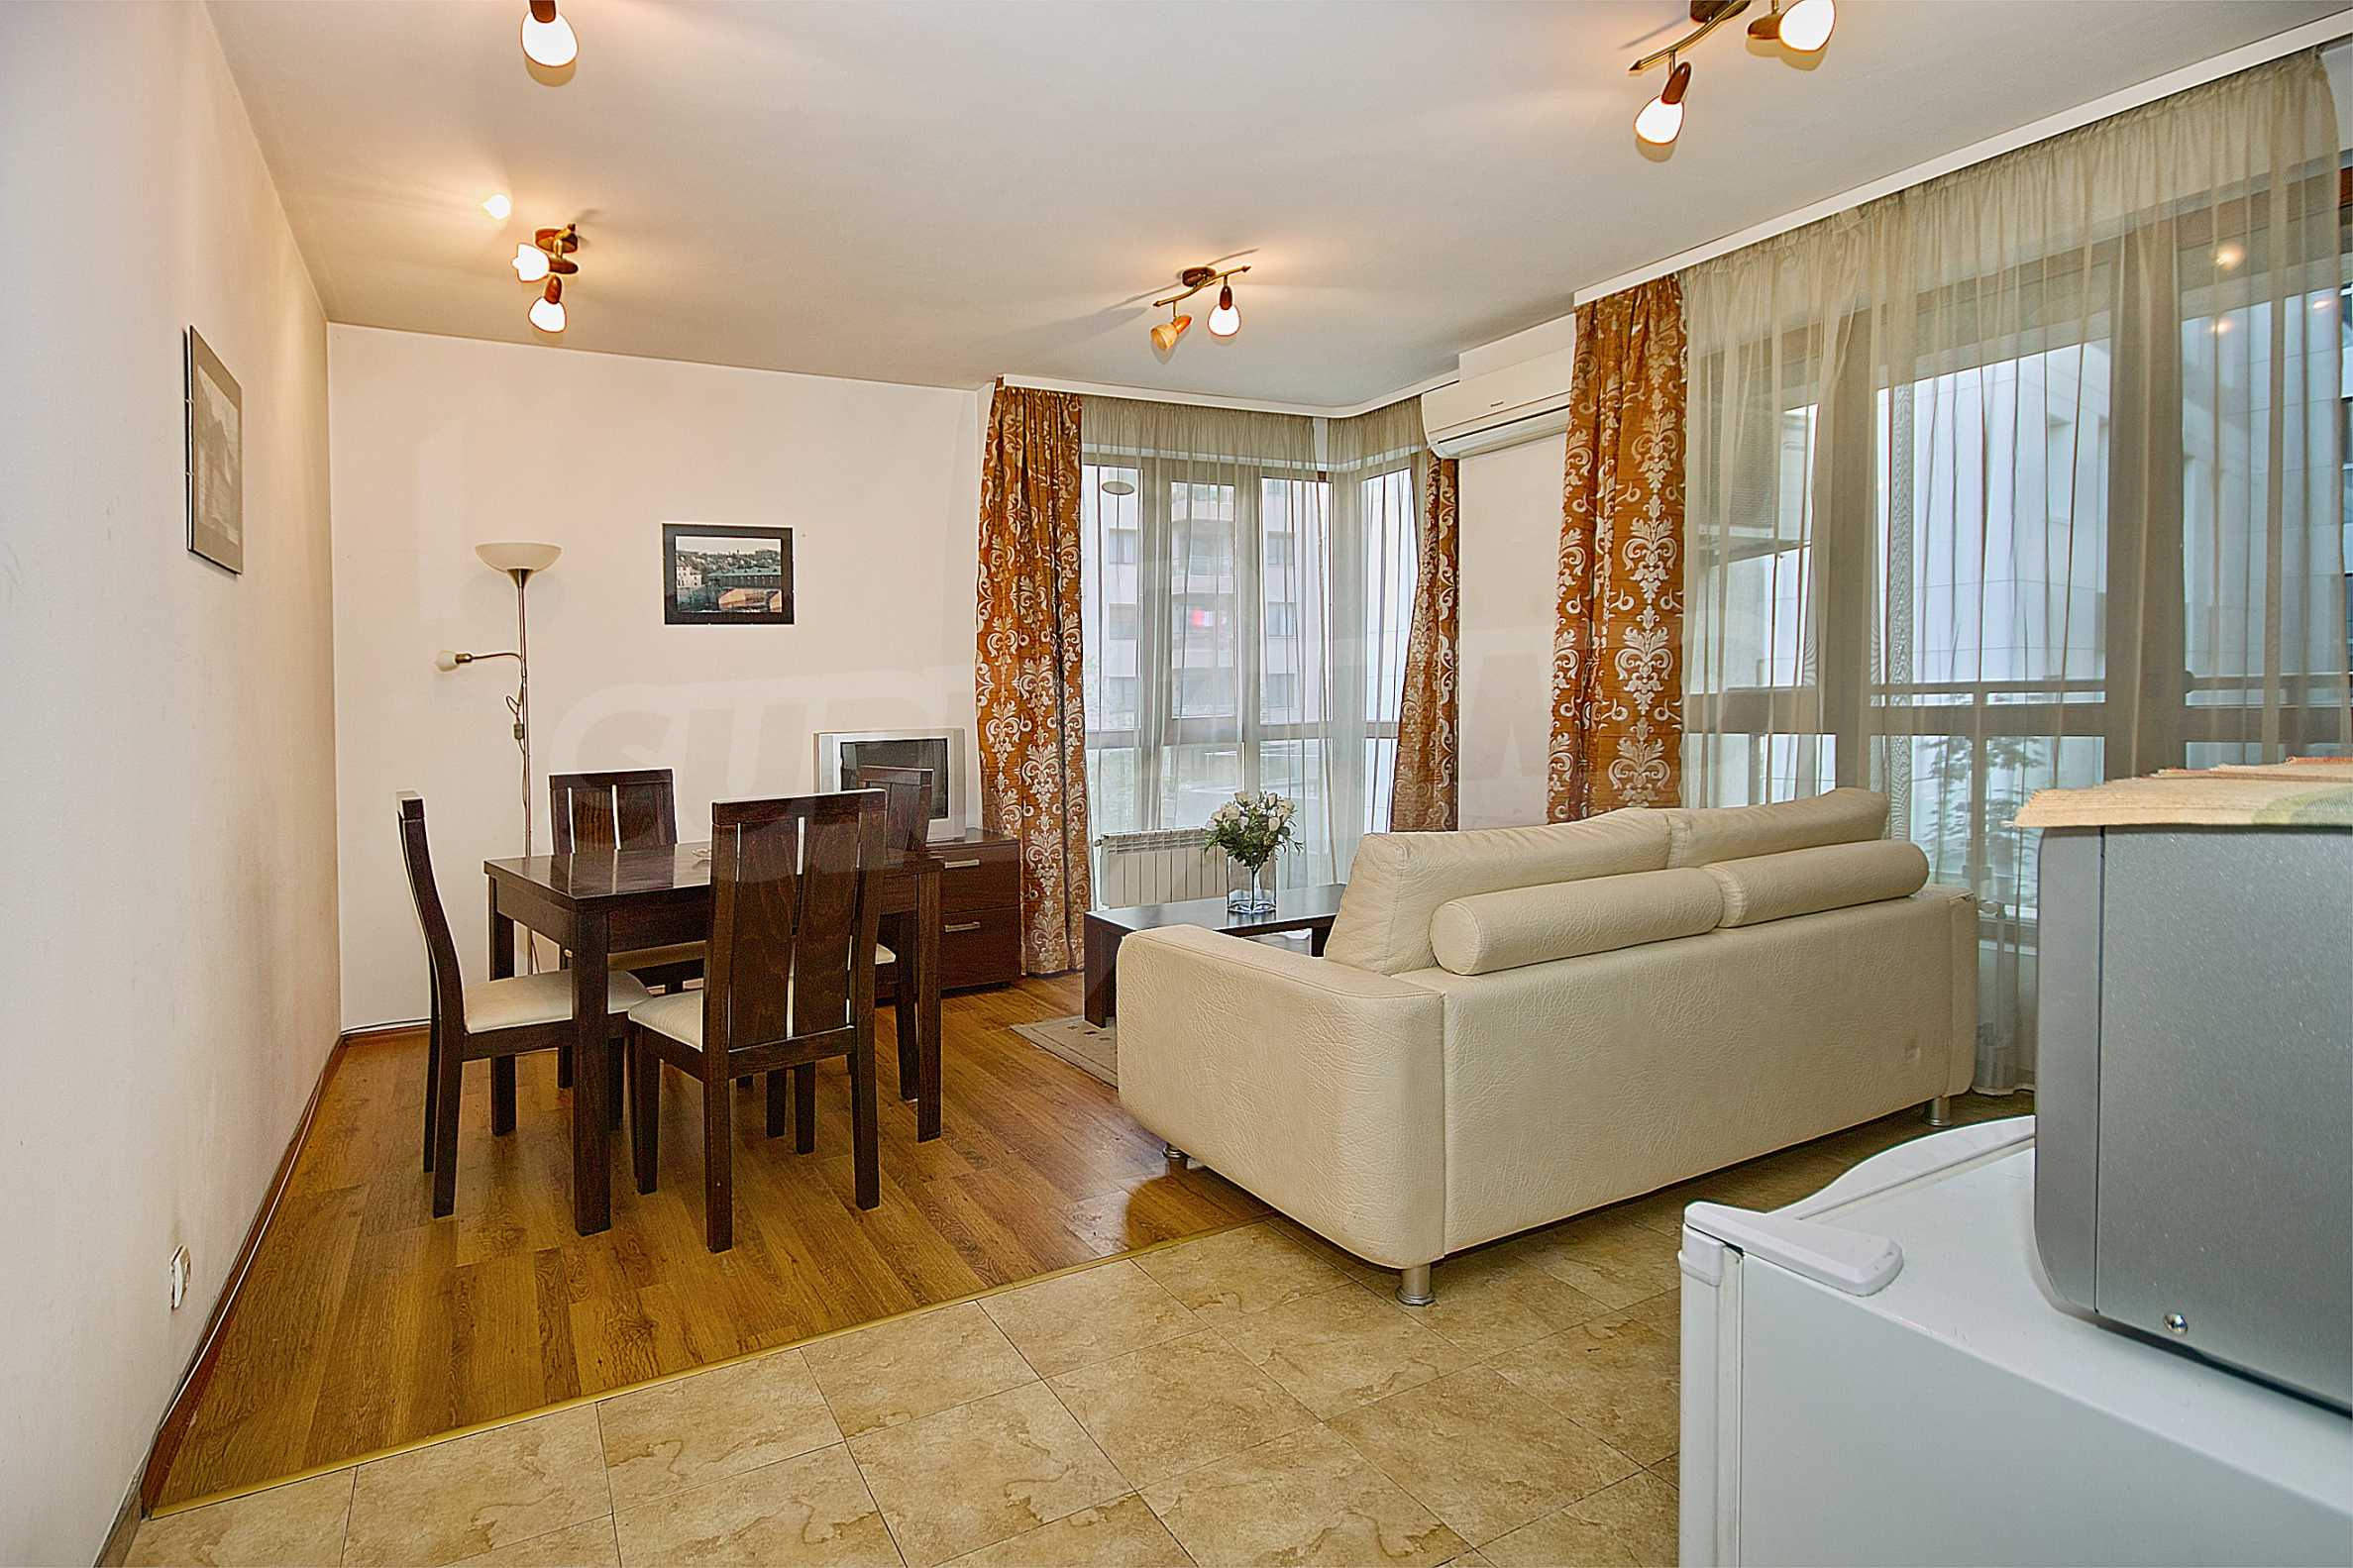 1-bedroom apartment for sale in Sofia, Bulgaria - Sales - 1-bedroom apartment.